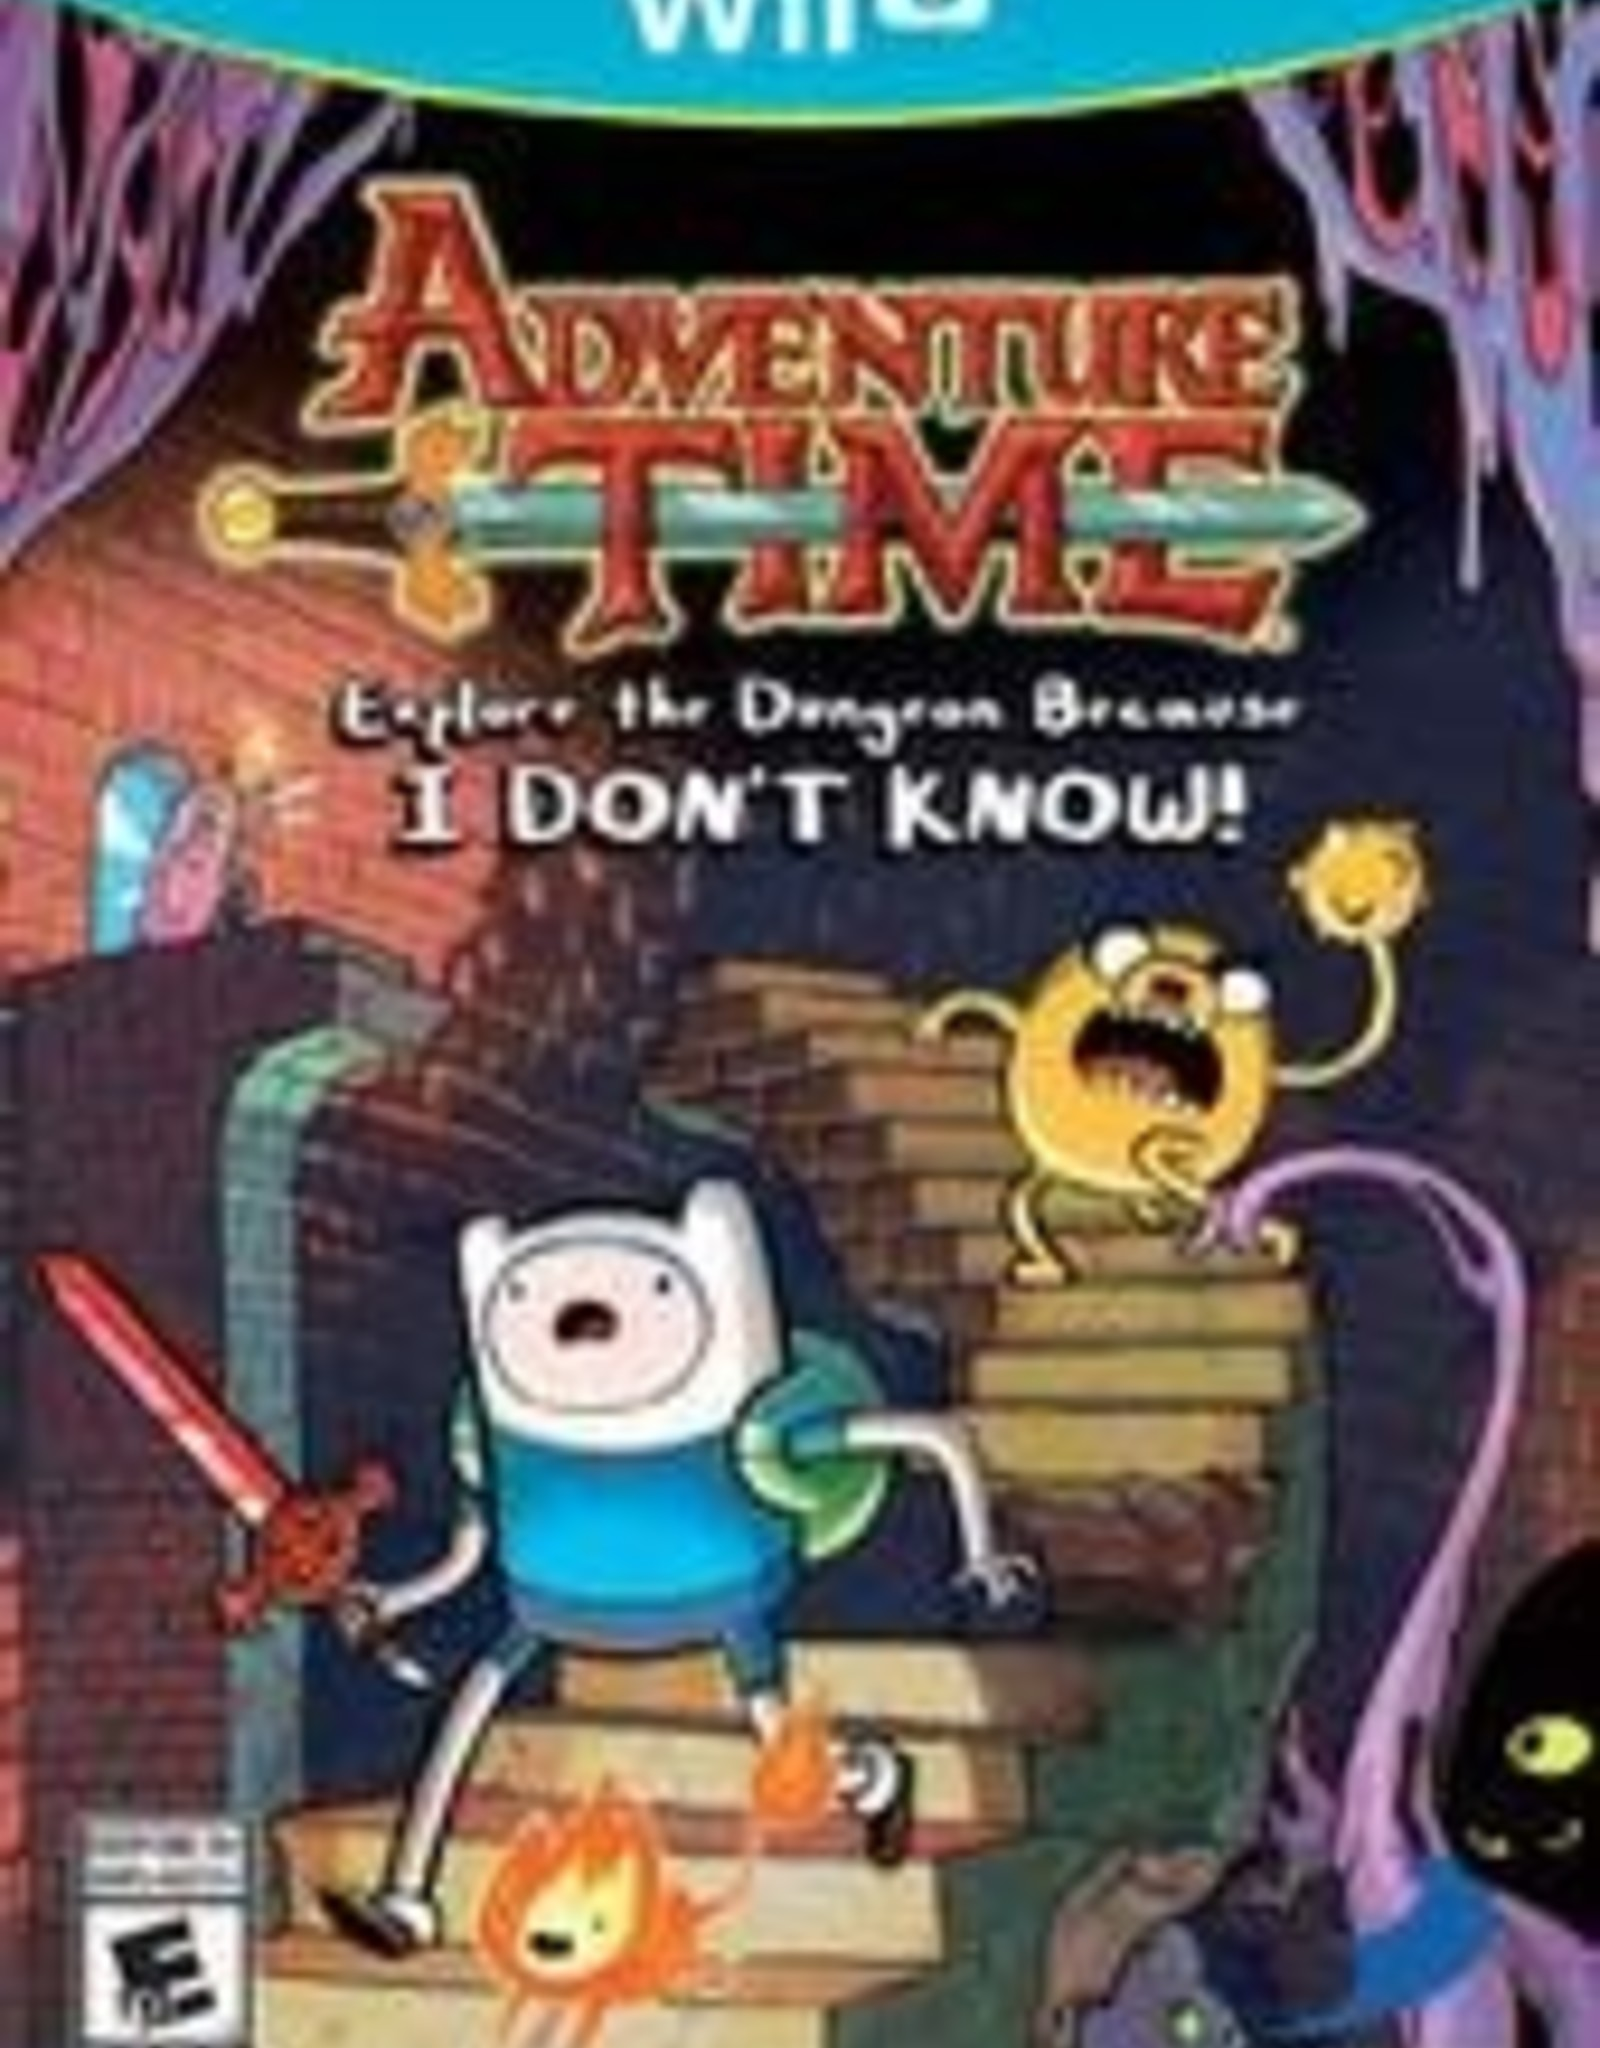 Wii U Adventure Time: Explore the Dungeon Because I Don't Know